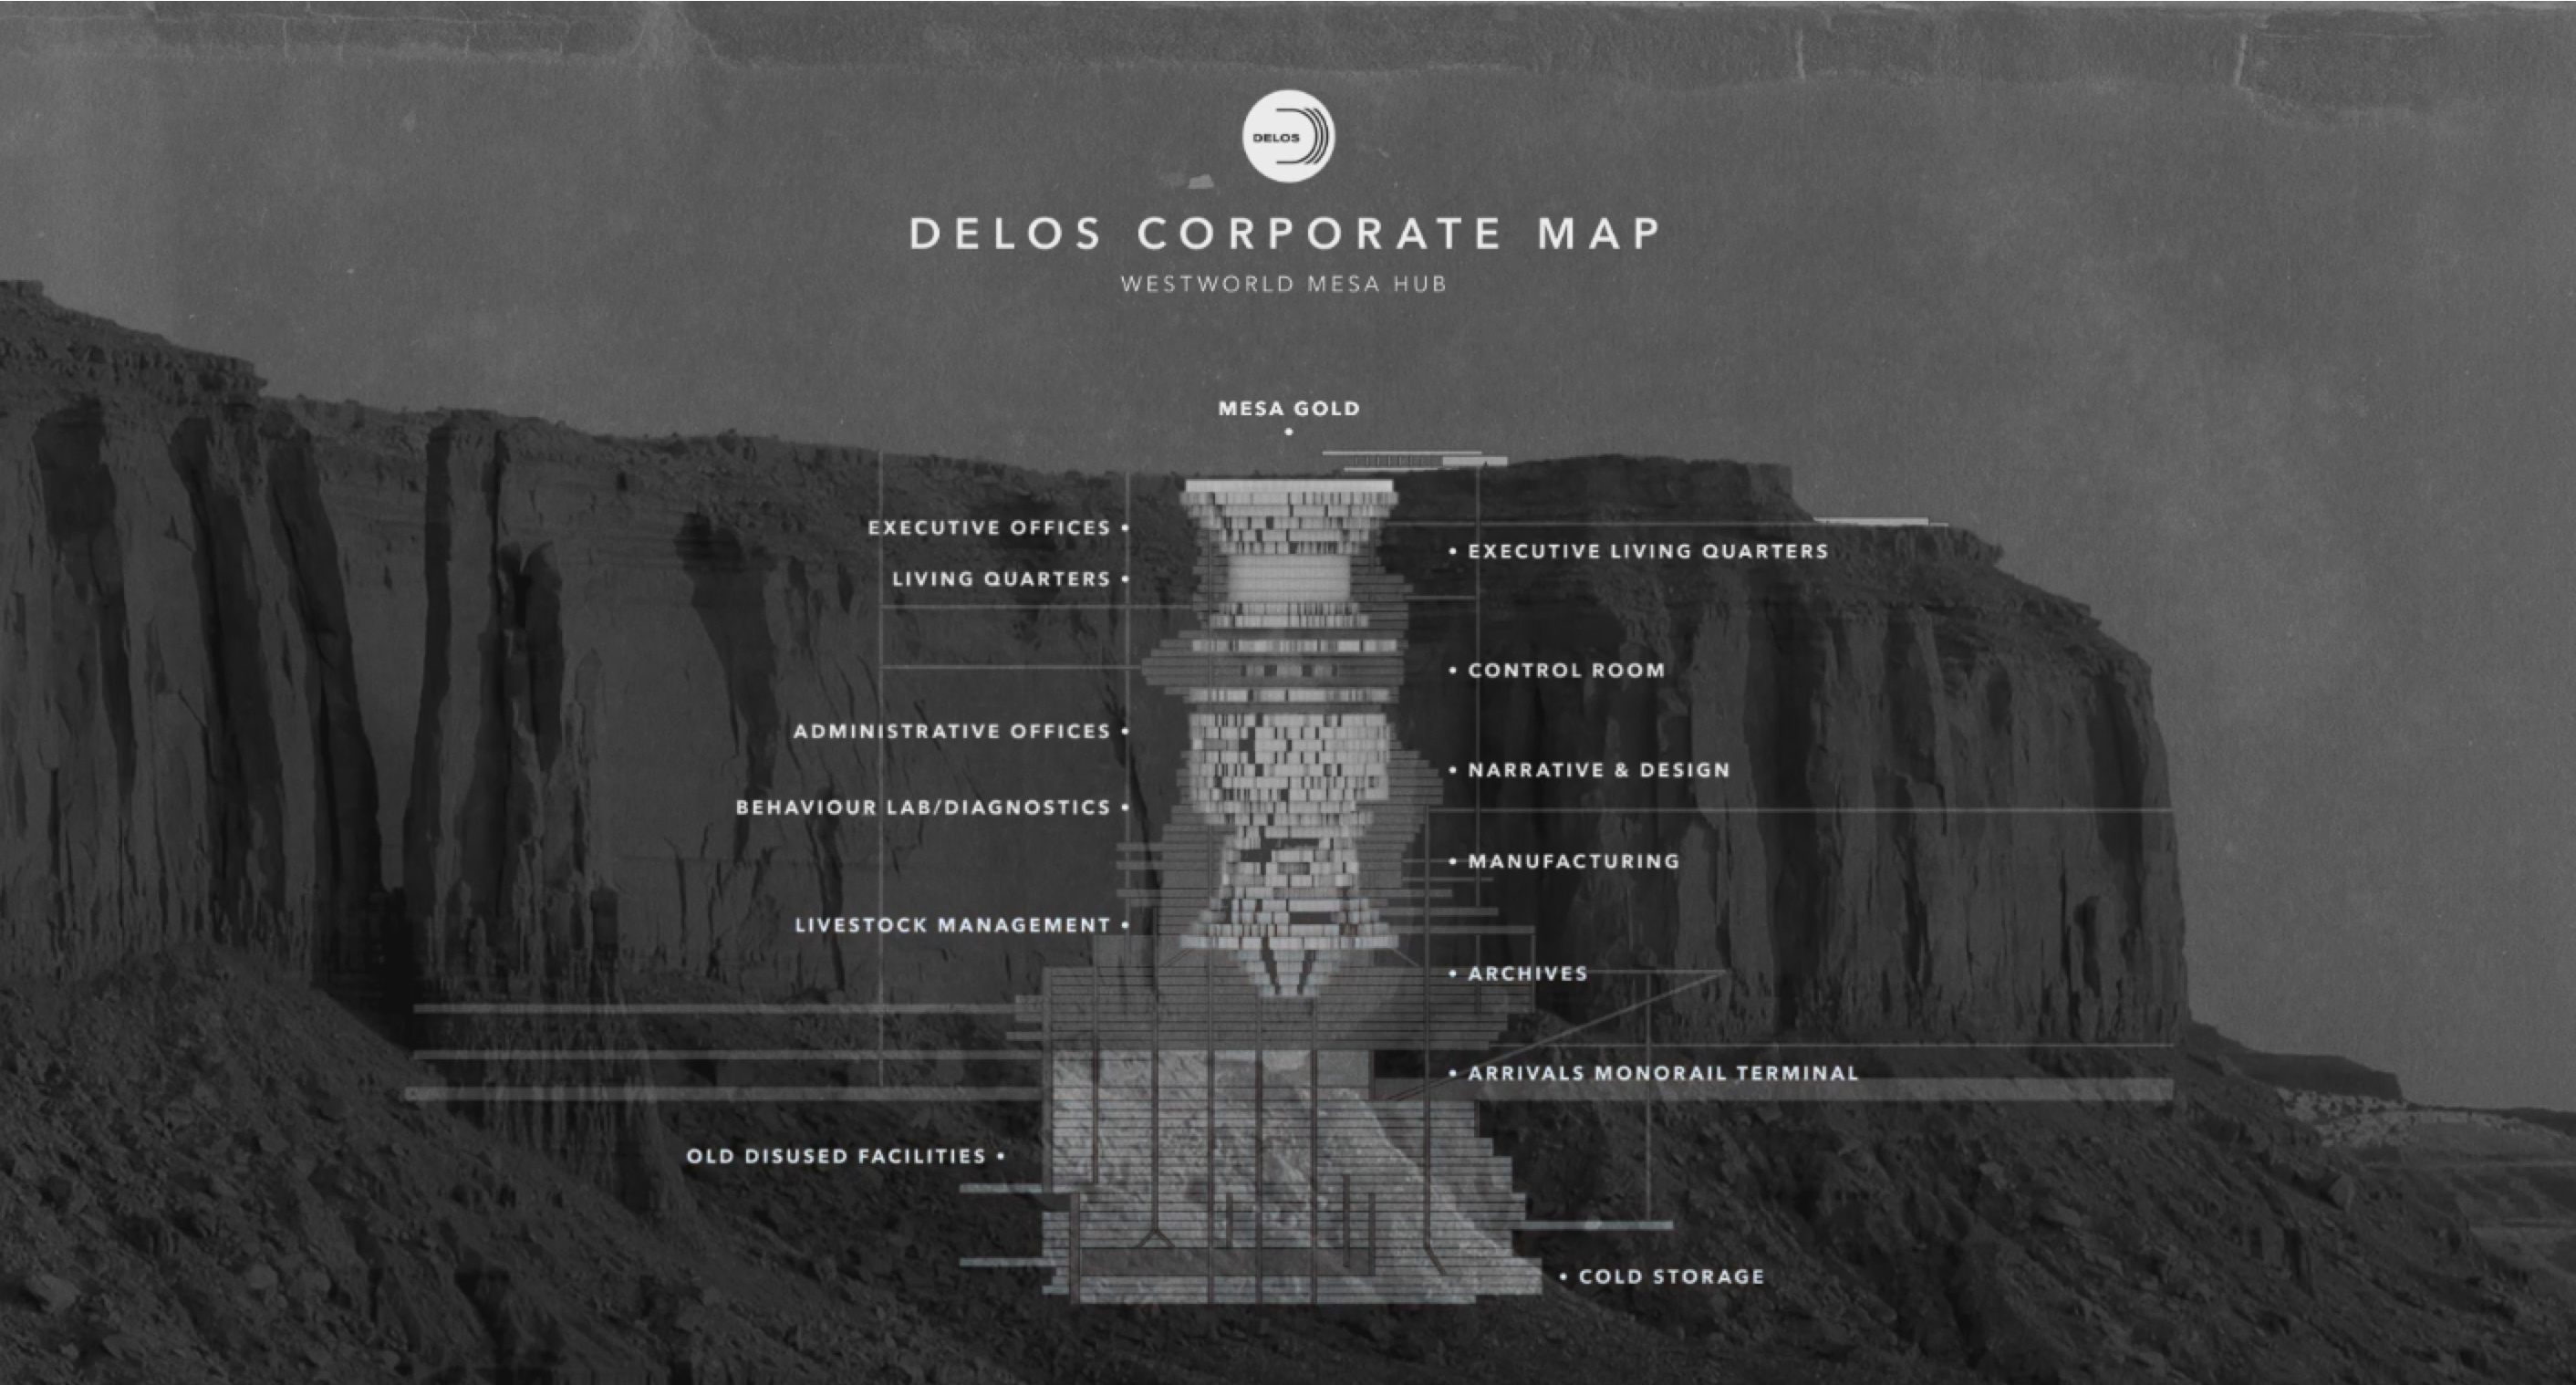 Explore The Westworld Maps and Contract